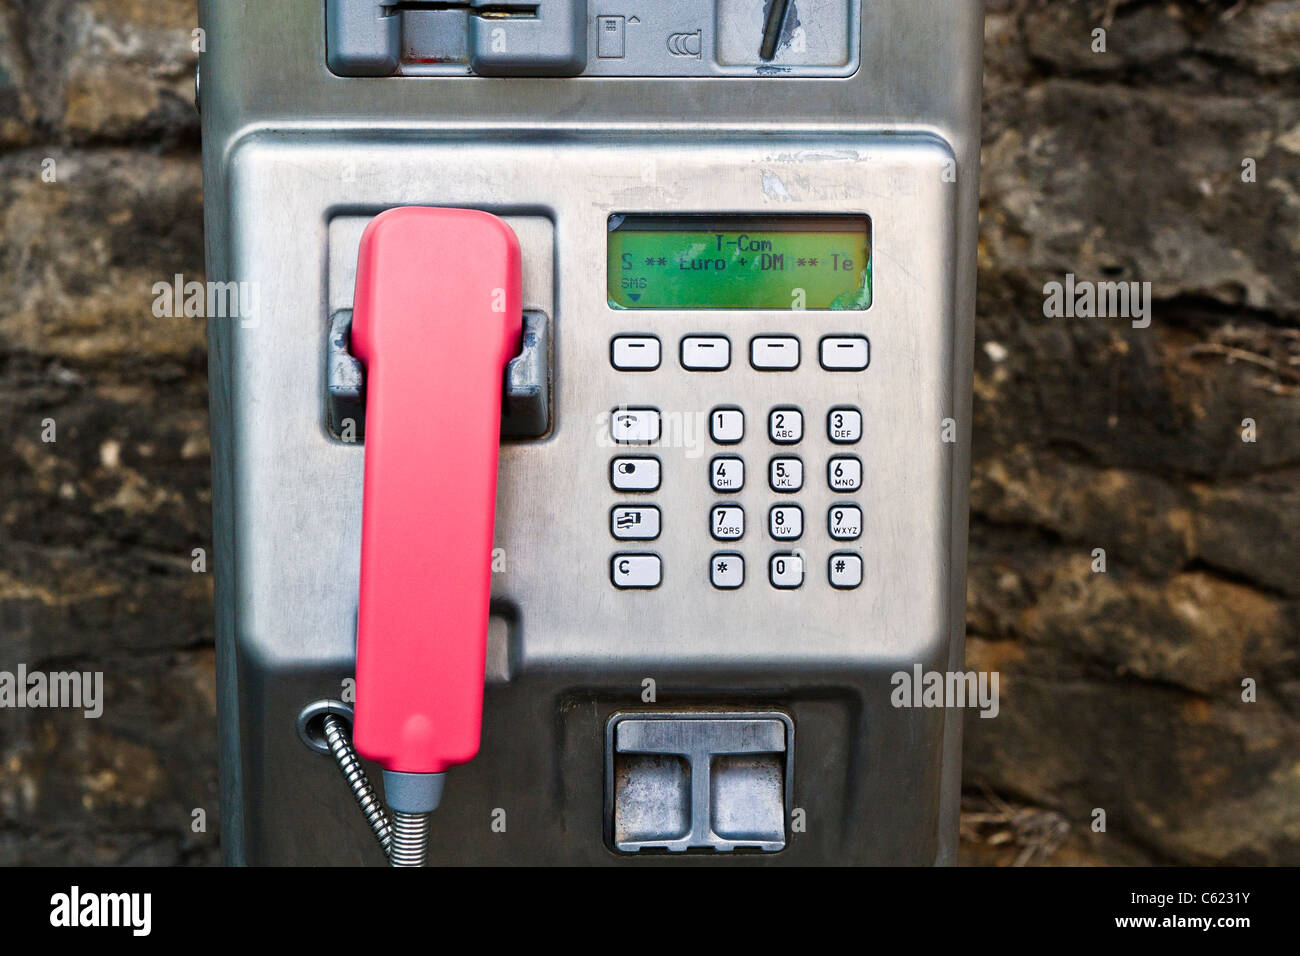 T-Com payphone, Germany - Stock Image